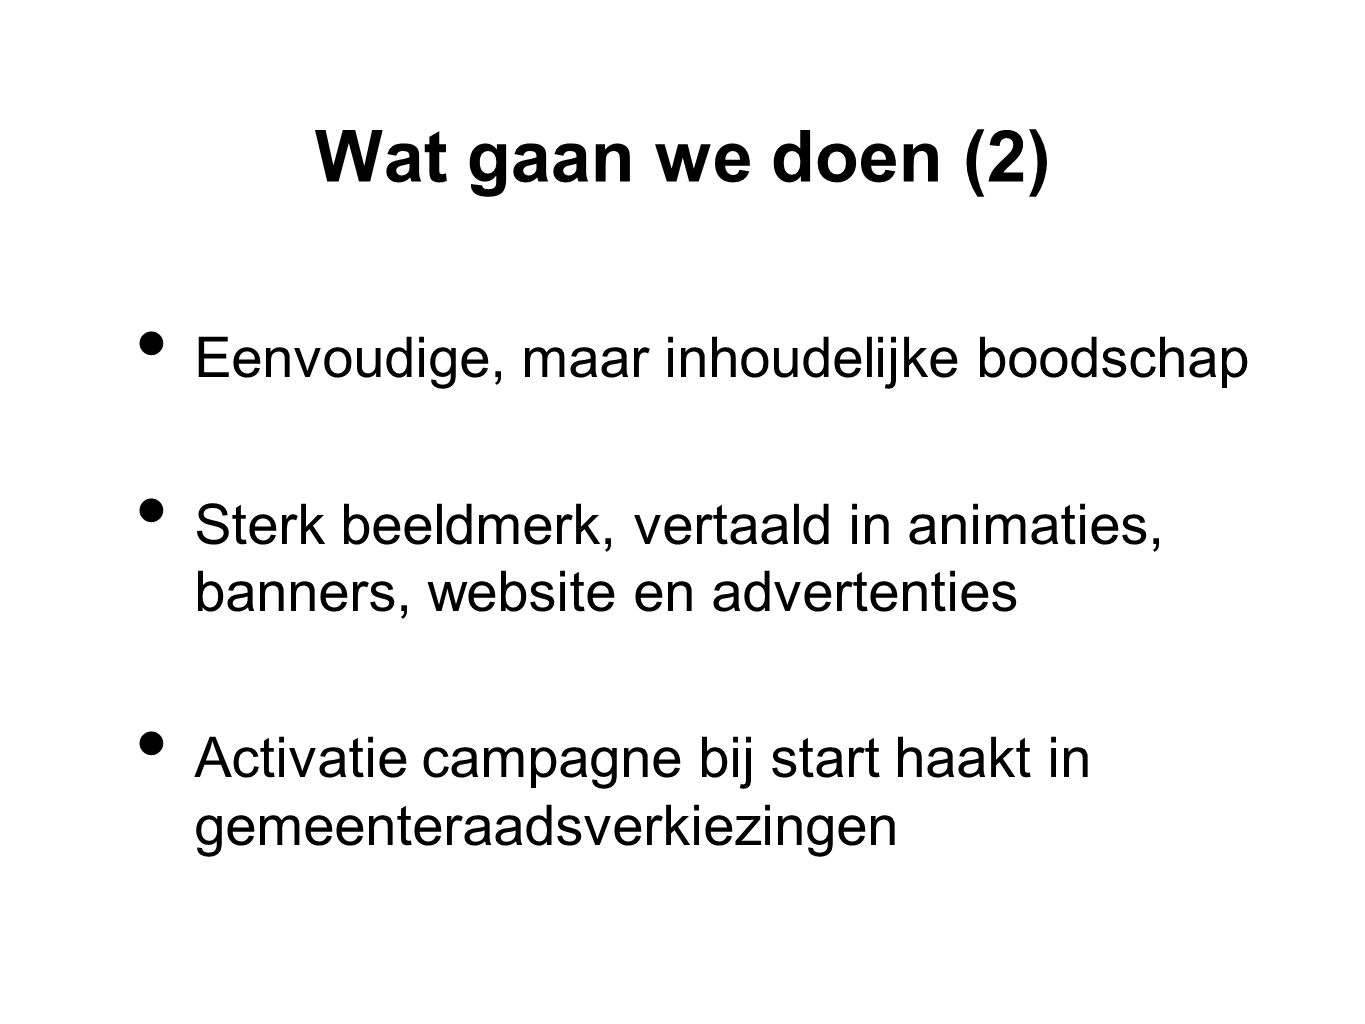 Wat gaan we doen (2) • Eenvoudige, maar inhoudelijke boodschap • Sterk beeldmerk, vertaald in animaties, banners, website en advertenties • Activatie campagne bij start haakt in gemeenteraadsverkiezingen